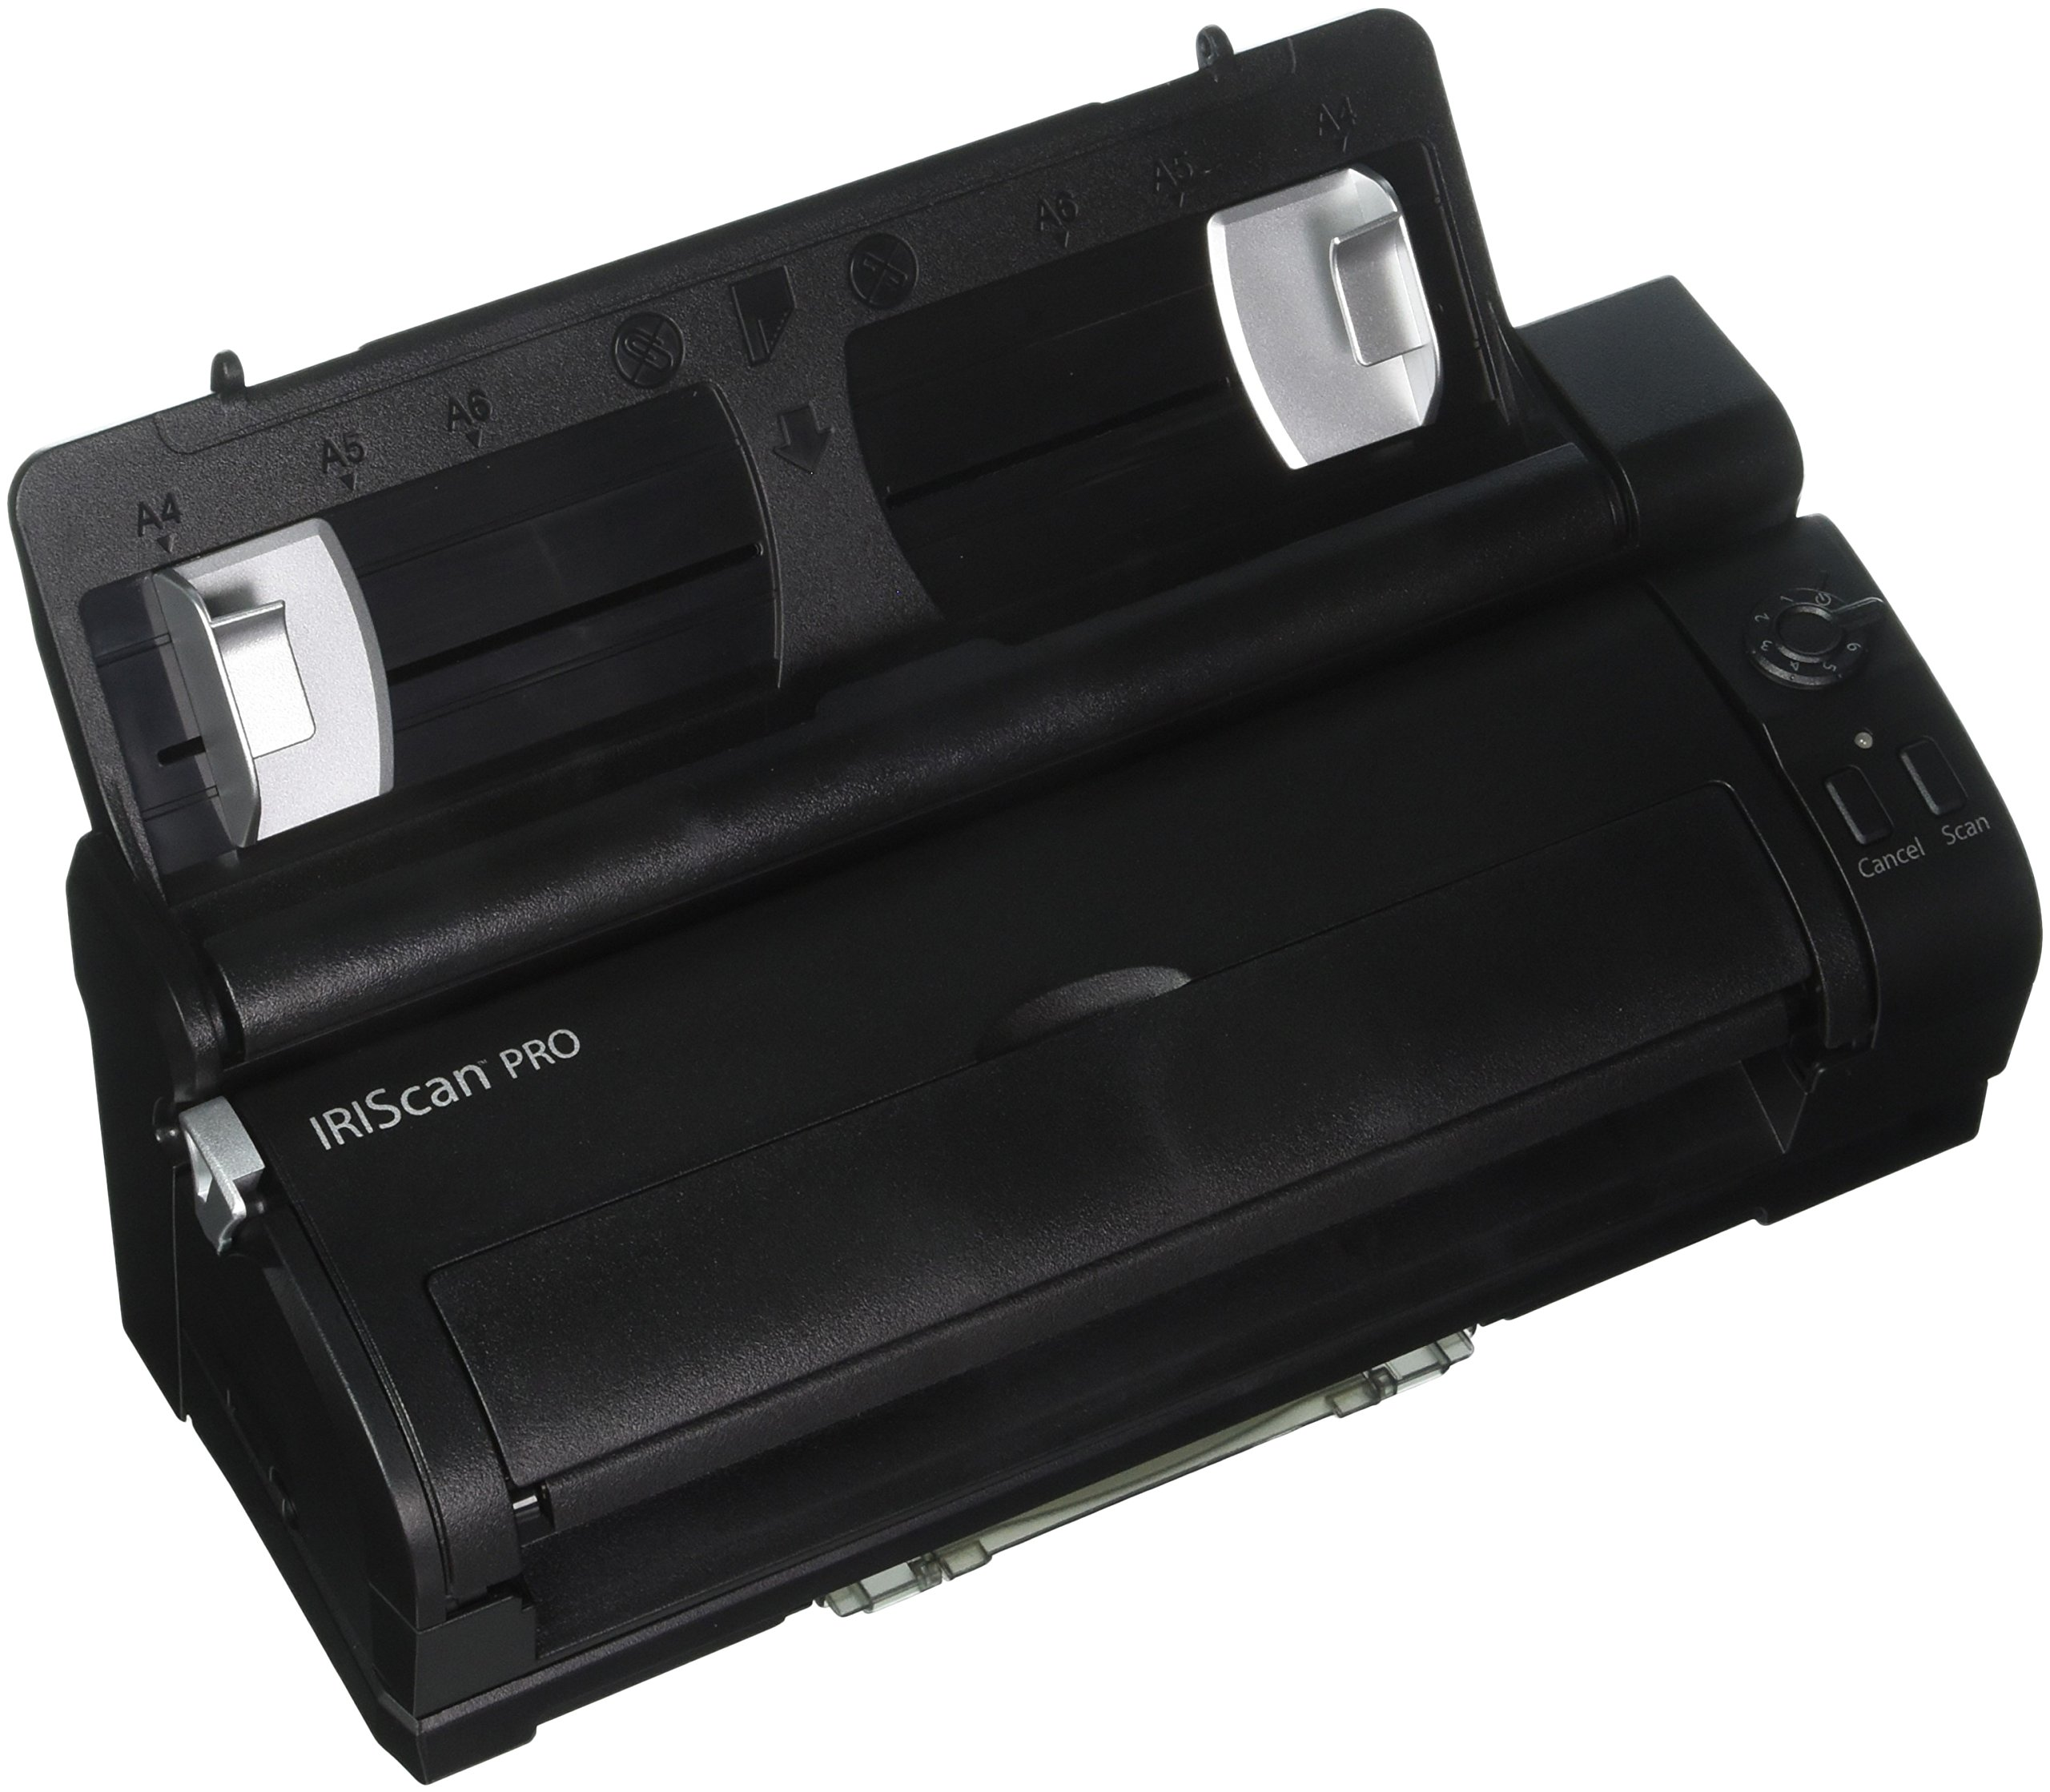 IRIScan Pro 3 Cloud Portable Color Scanner by USA Inc (Image #1)